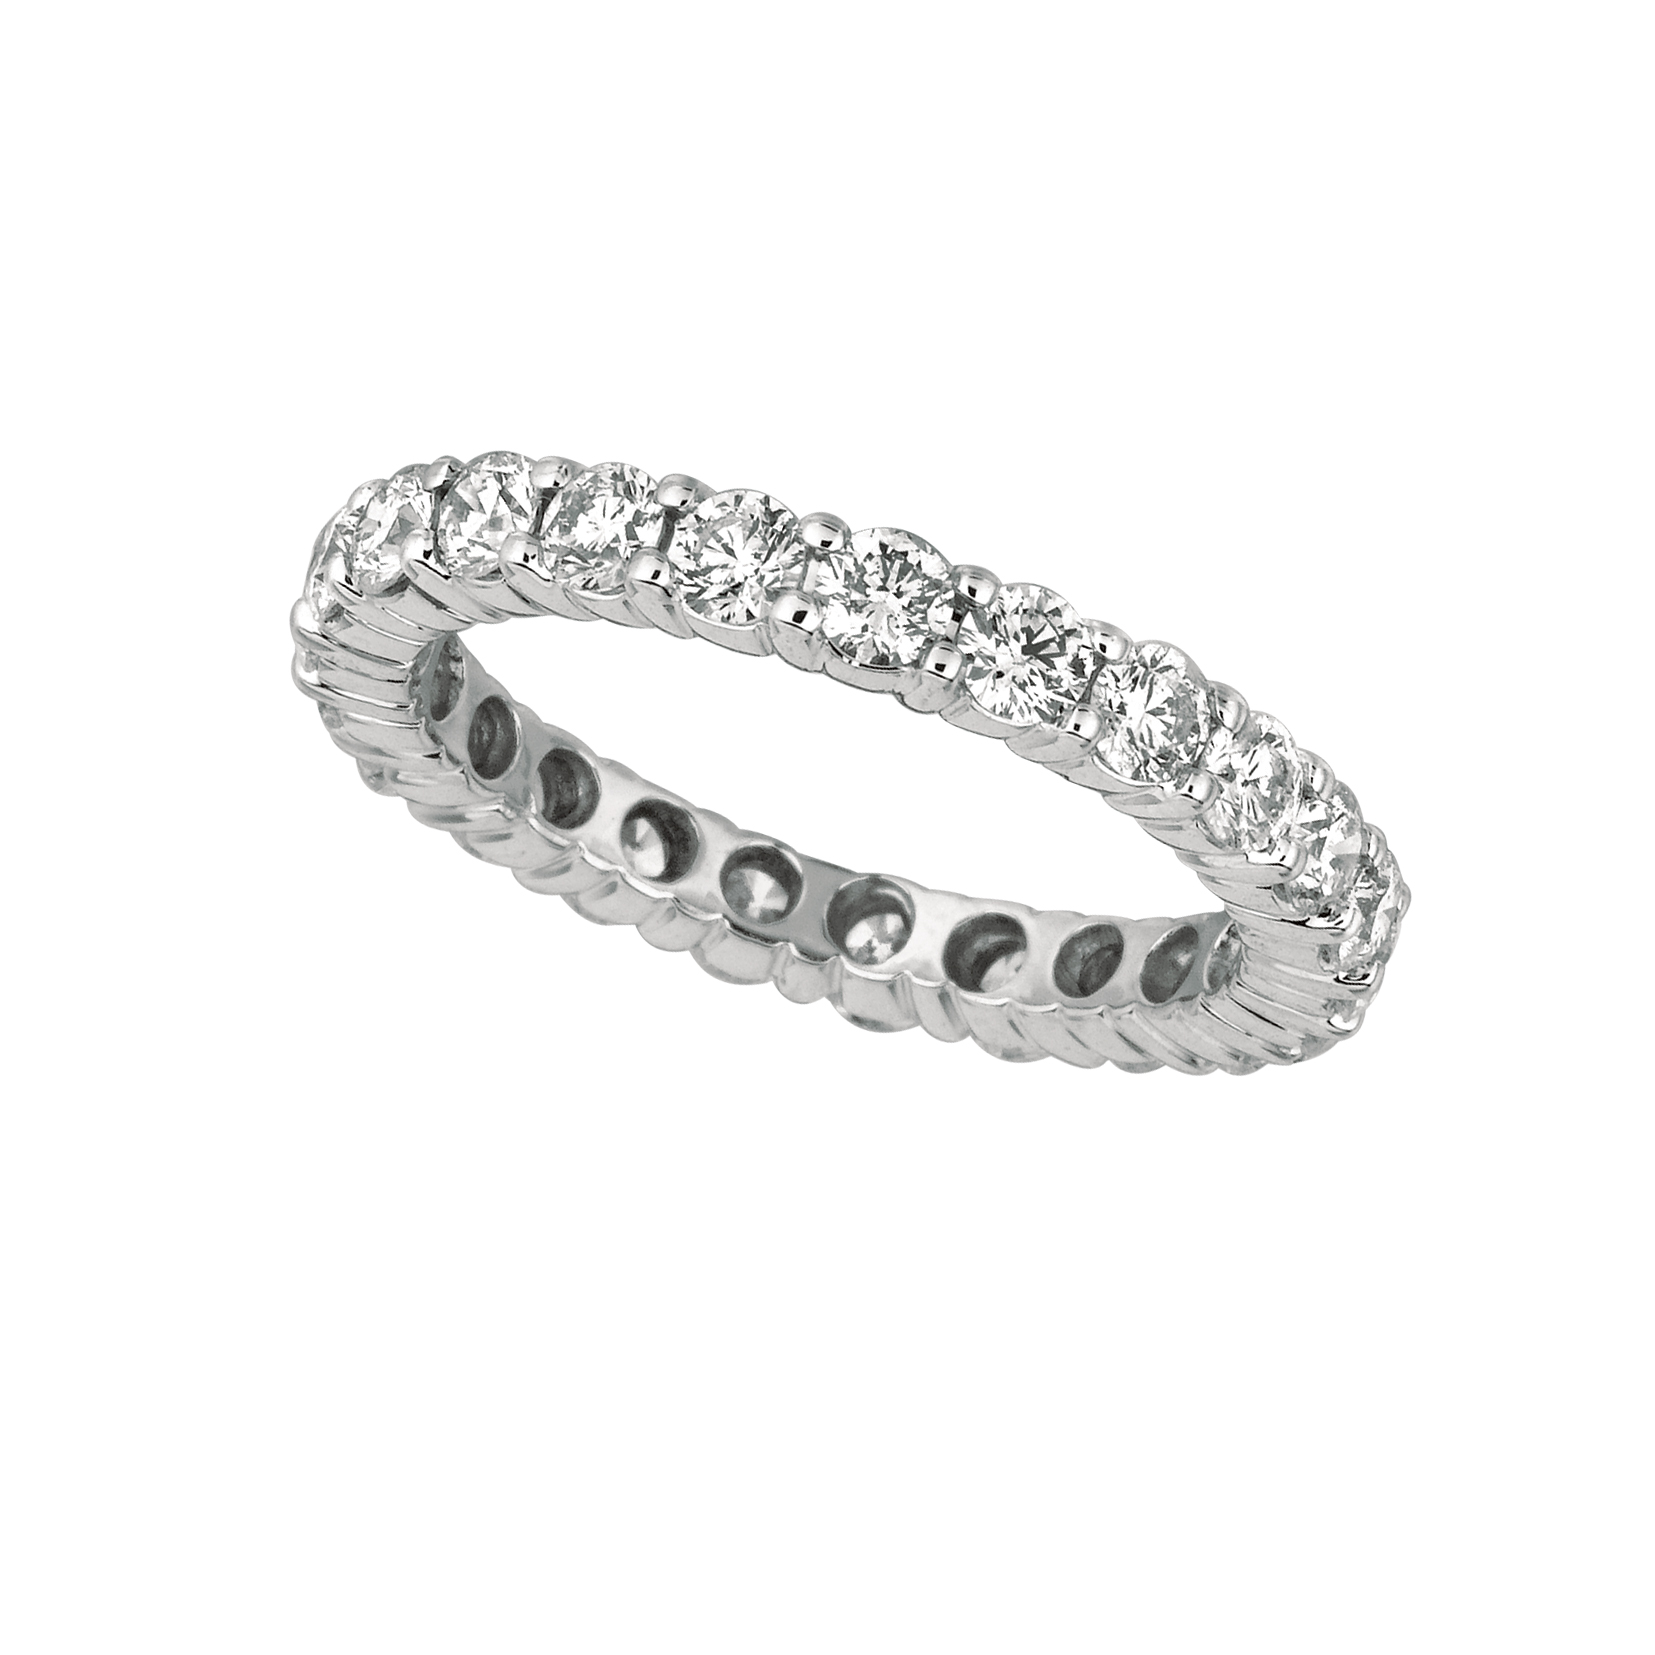 10 pointer diamond eternity band. Price: $3601.33